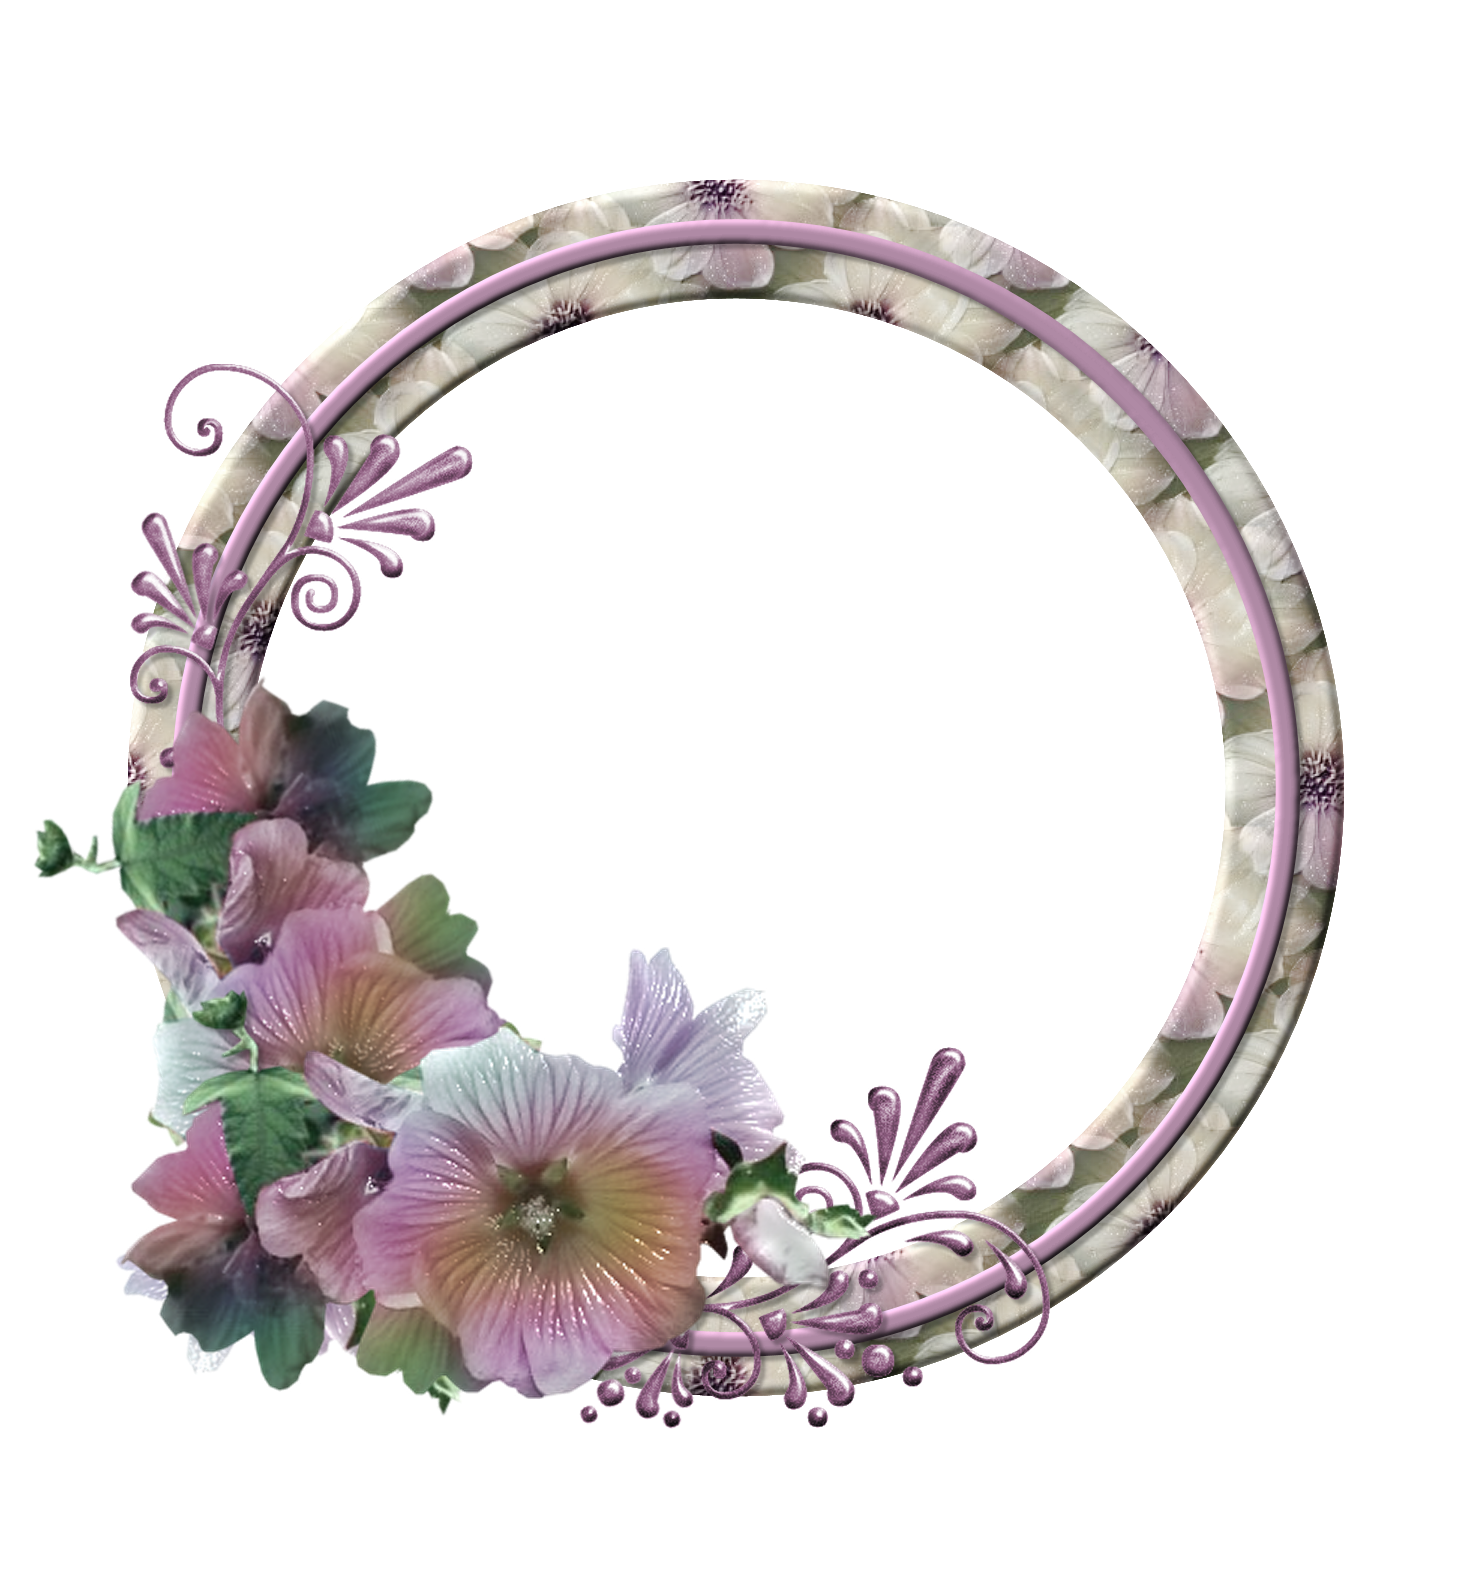 Beauty In Frame: Creative Elegance Designs: Another Of Tiki's Beautiful Frames